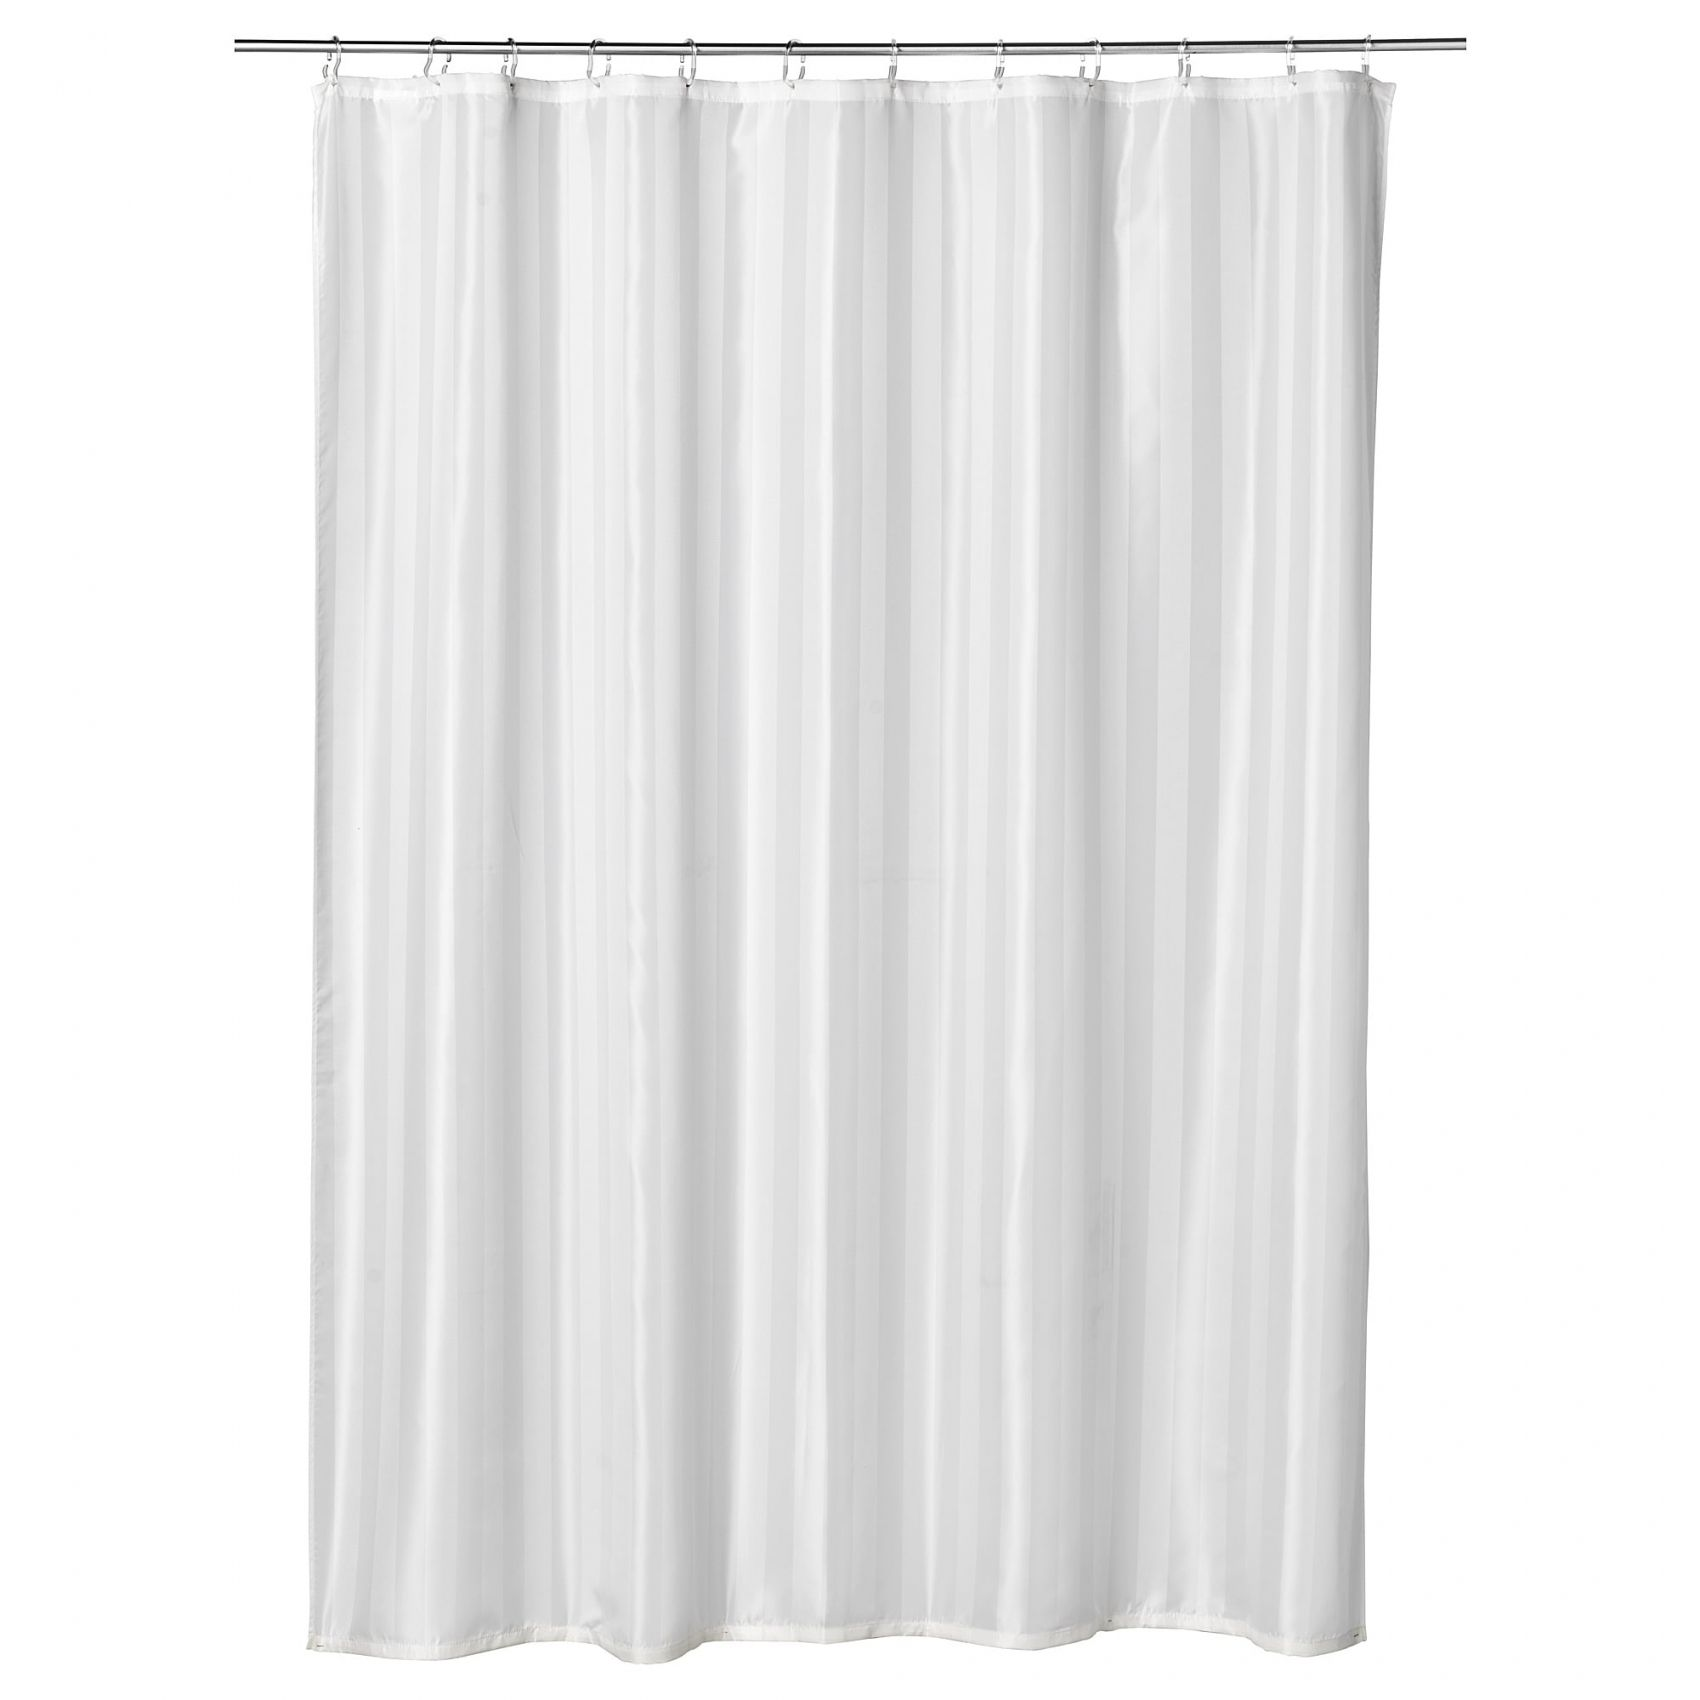 The 9 Perfect Extra Long Shower Curtains Ikea Wc11d43 Https